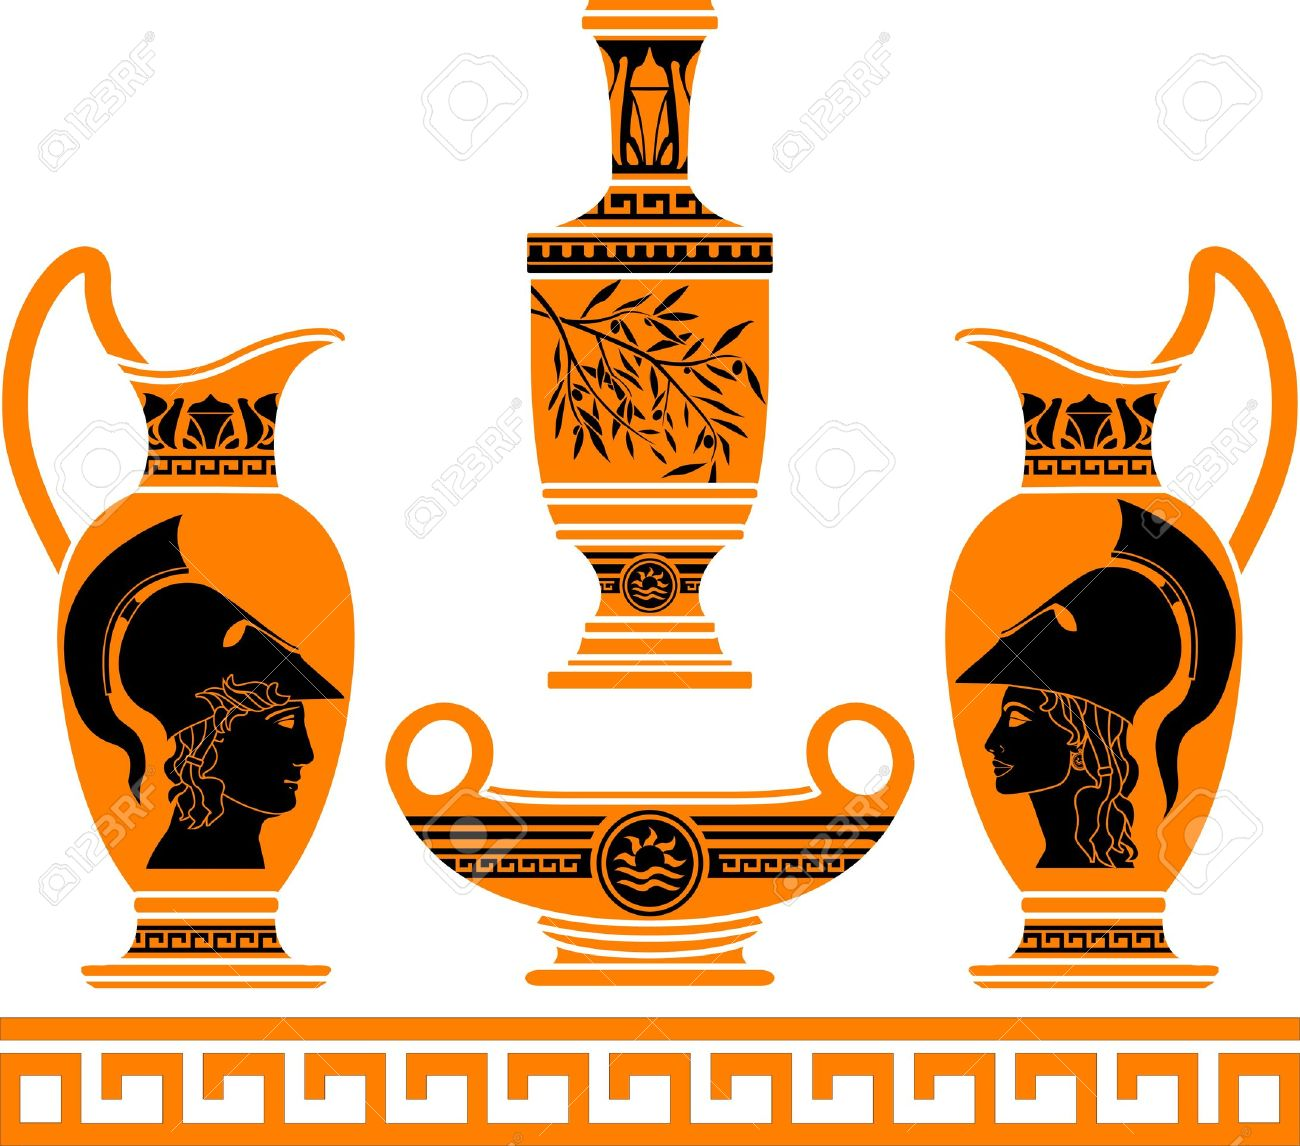 Greek vases clipart banner transparent 1,295 Amphora Vase Stock Vector Illustration And Royalty Free ... banner transparent